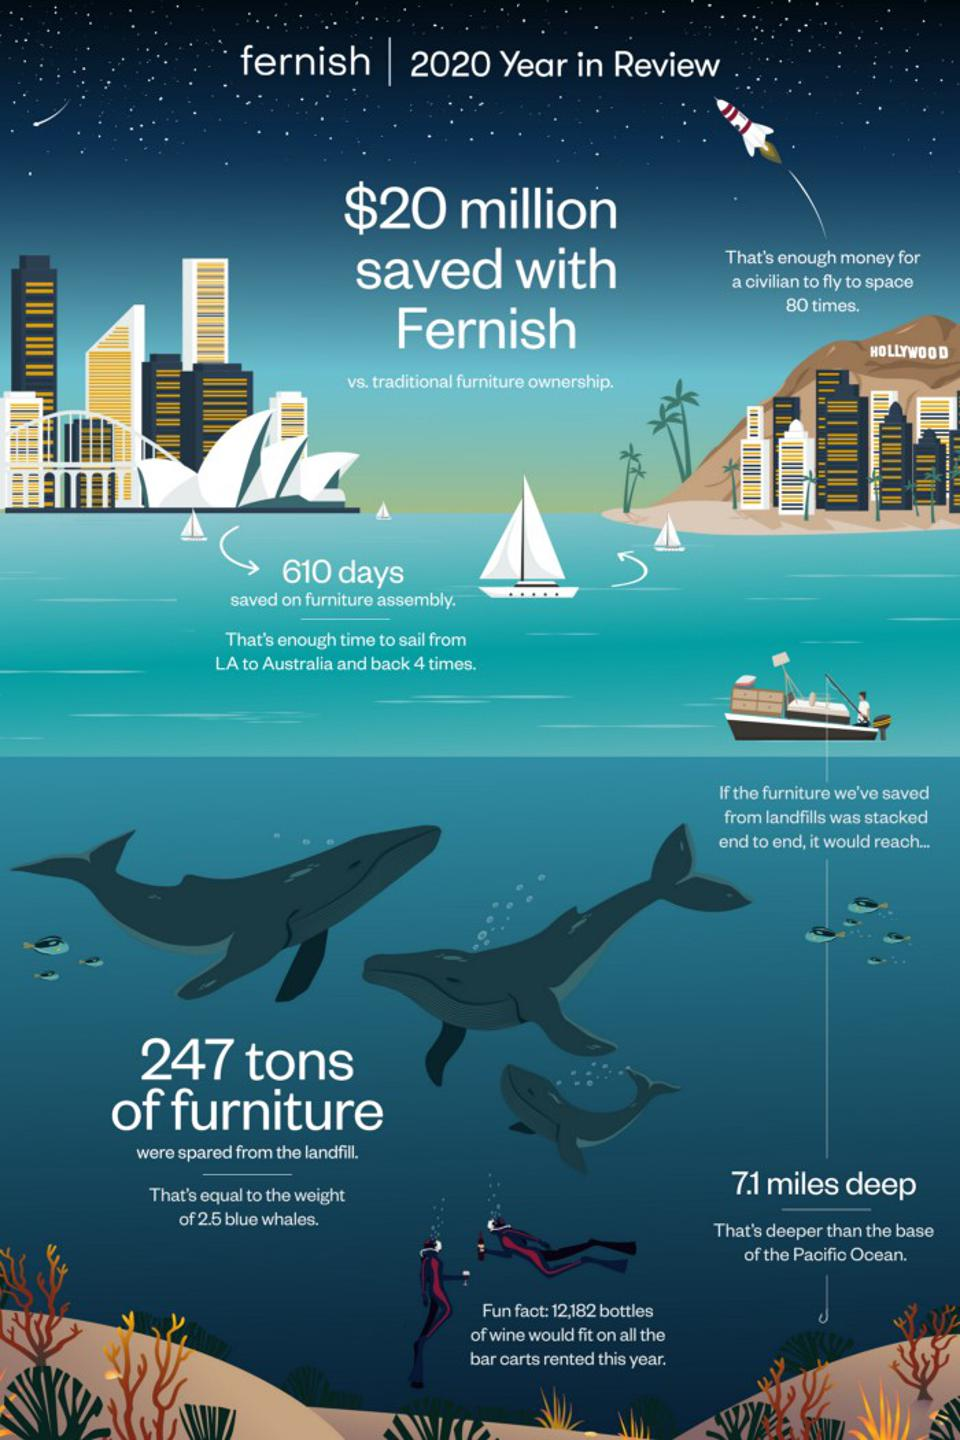 An infographic by the Fernish company illustrating sustainability impacts of their rental service